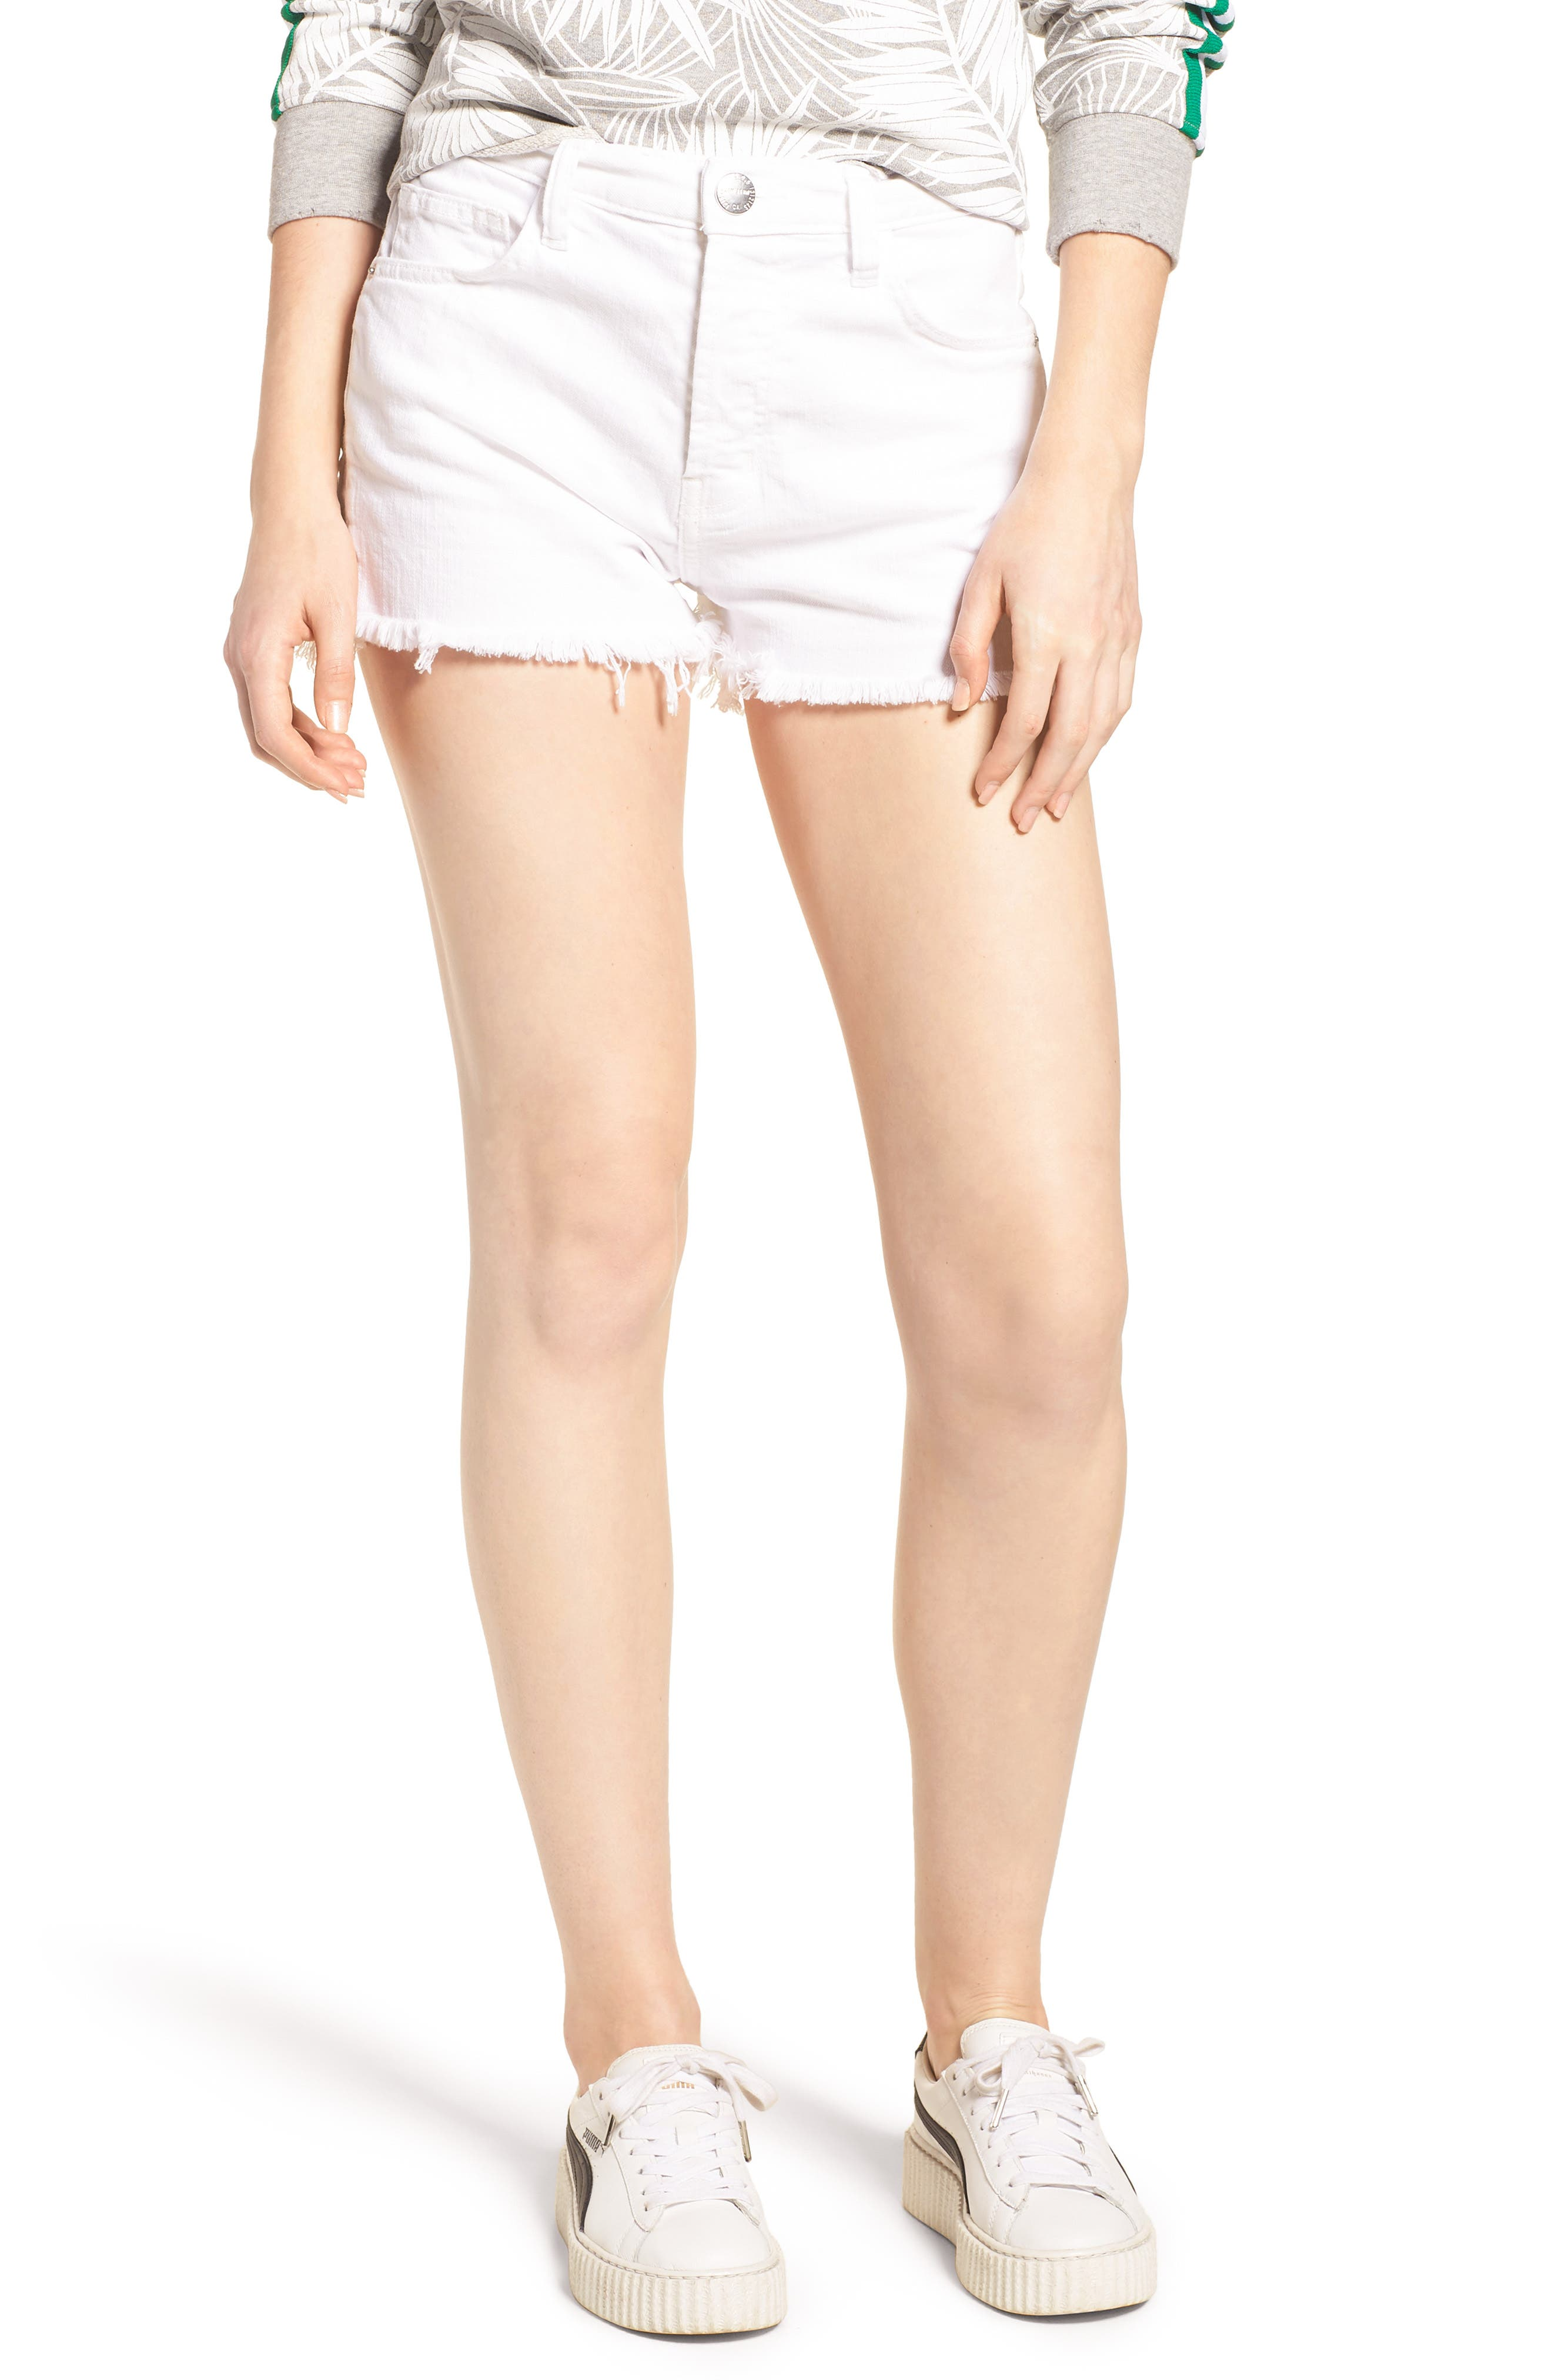 The Ultra High Waist Cutoff Denim Shorts,                             Main thumbnail 1, color,                             155